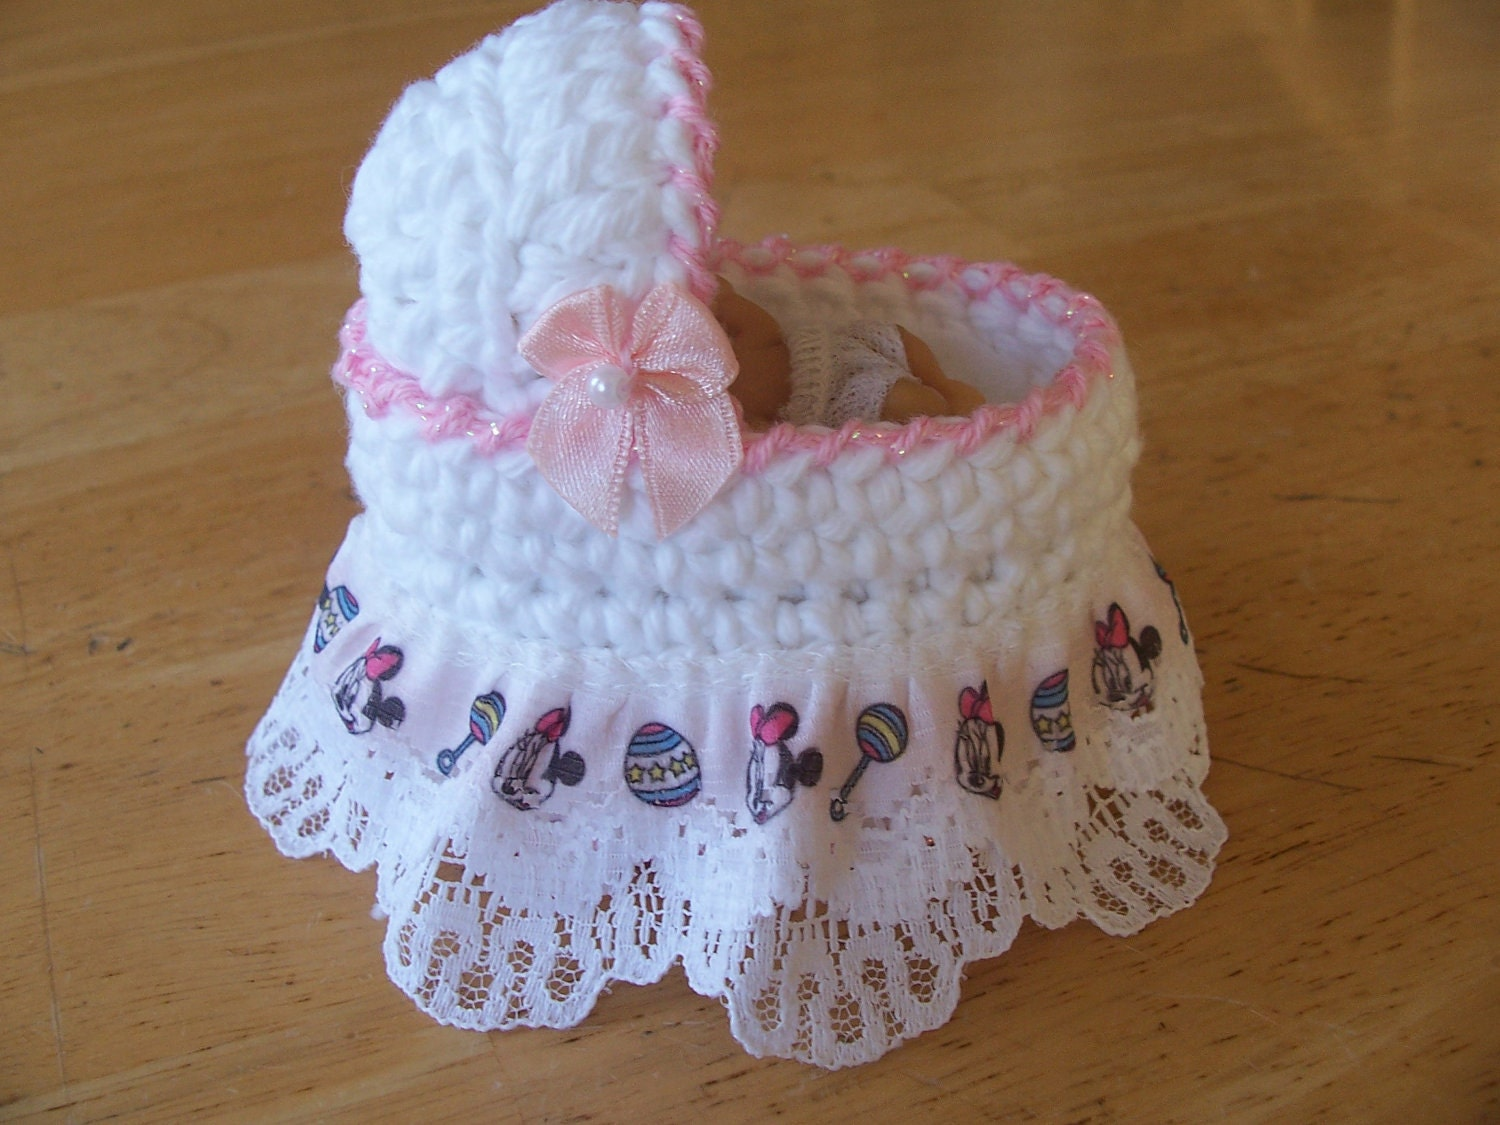 baby dolls lace miniature art dolls dolls clothes munecos baby shower